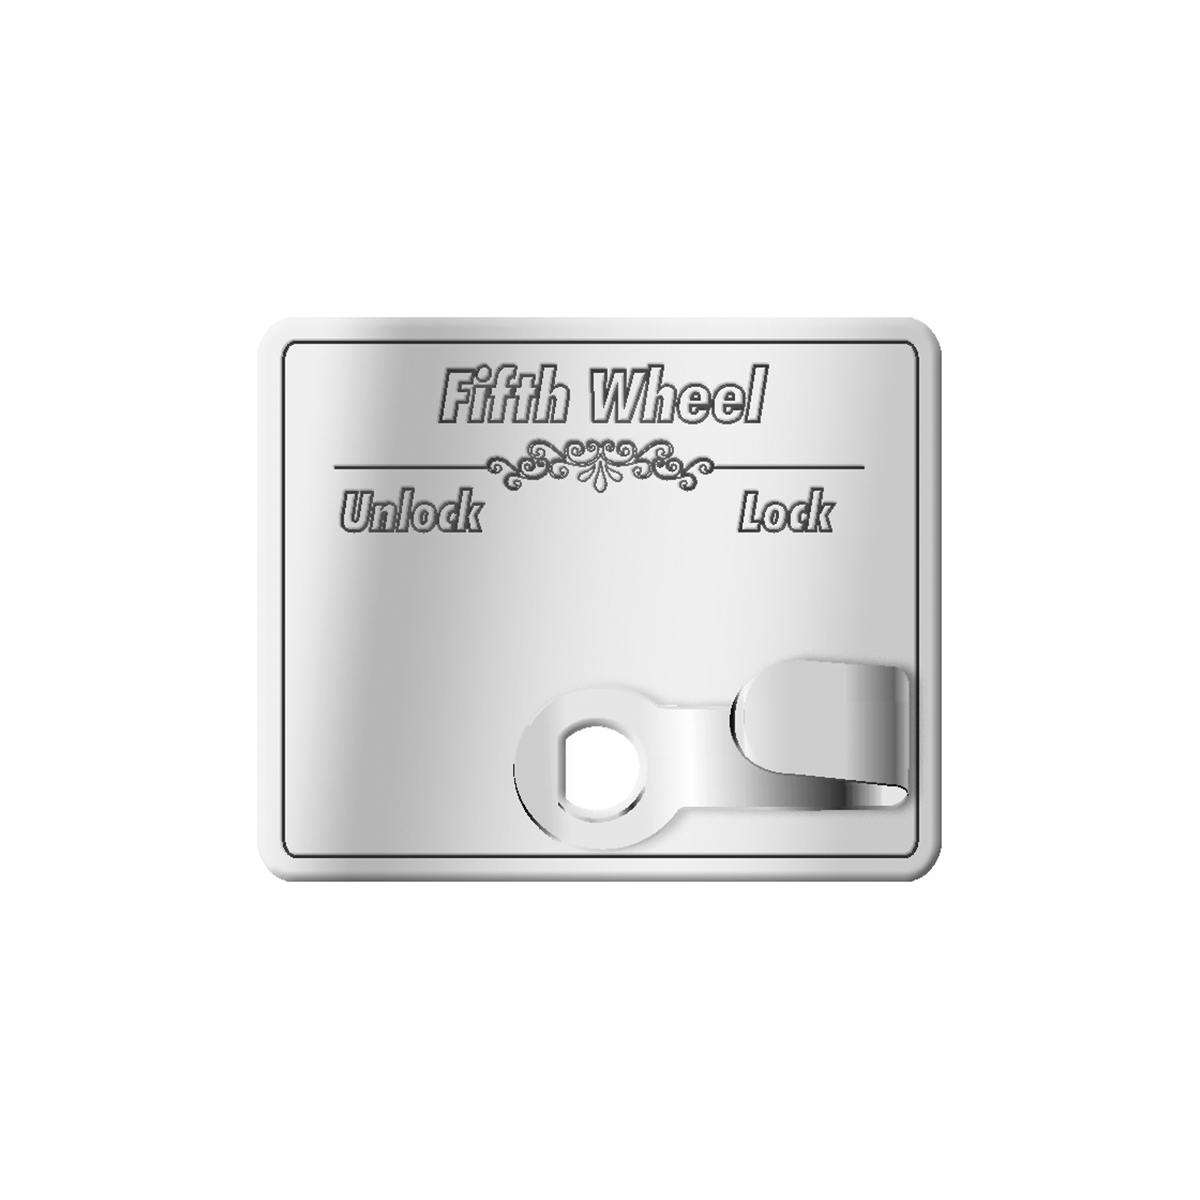 68612 Stainless Steel Fifth Wheel Switch Guard for KW